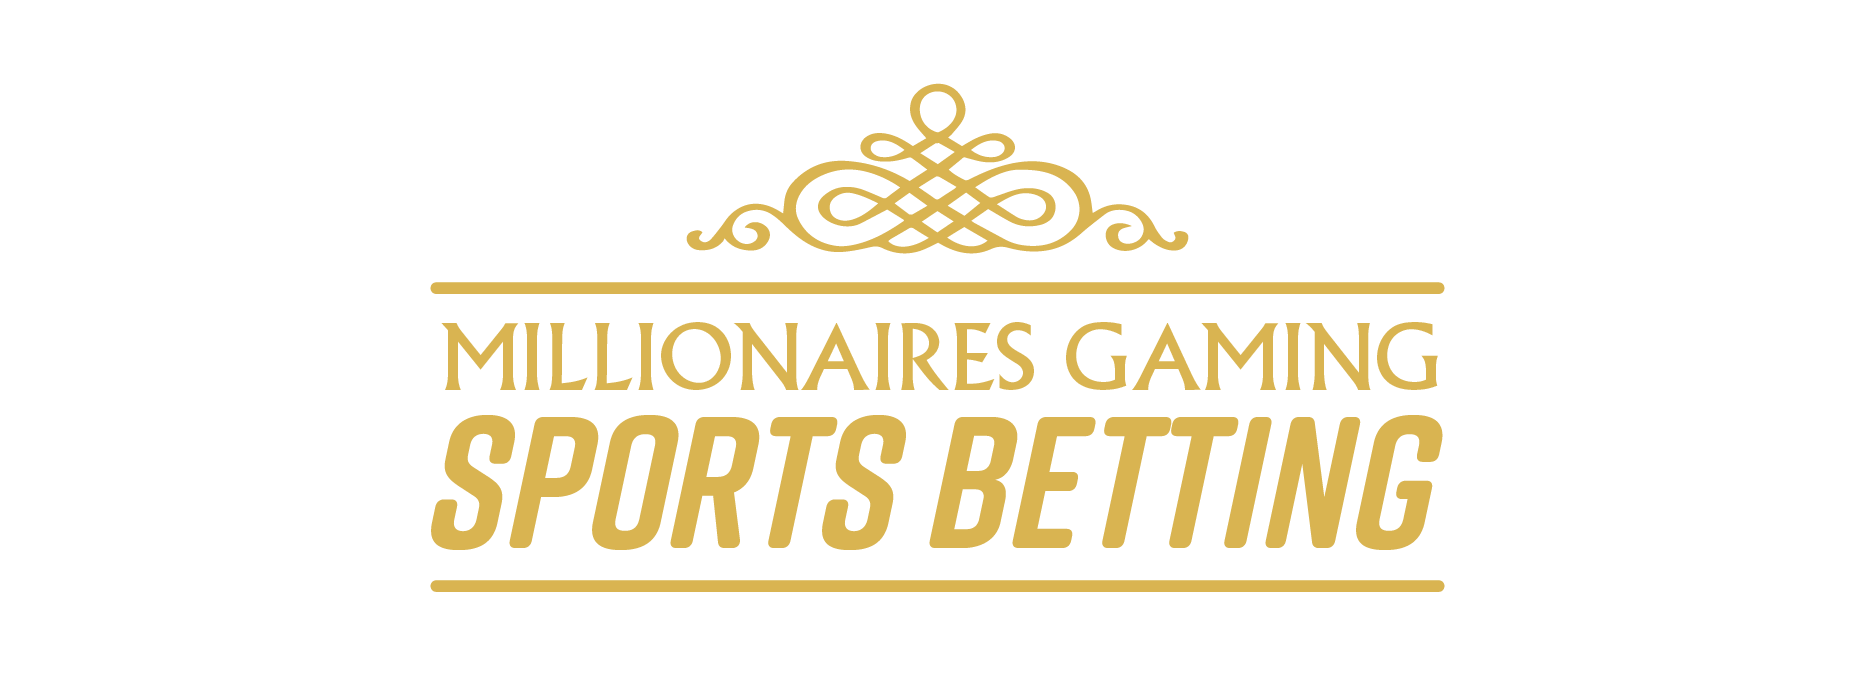 Millionaires Gaming Sports Betting Bookmaker Logo